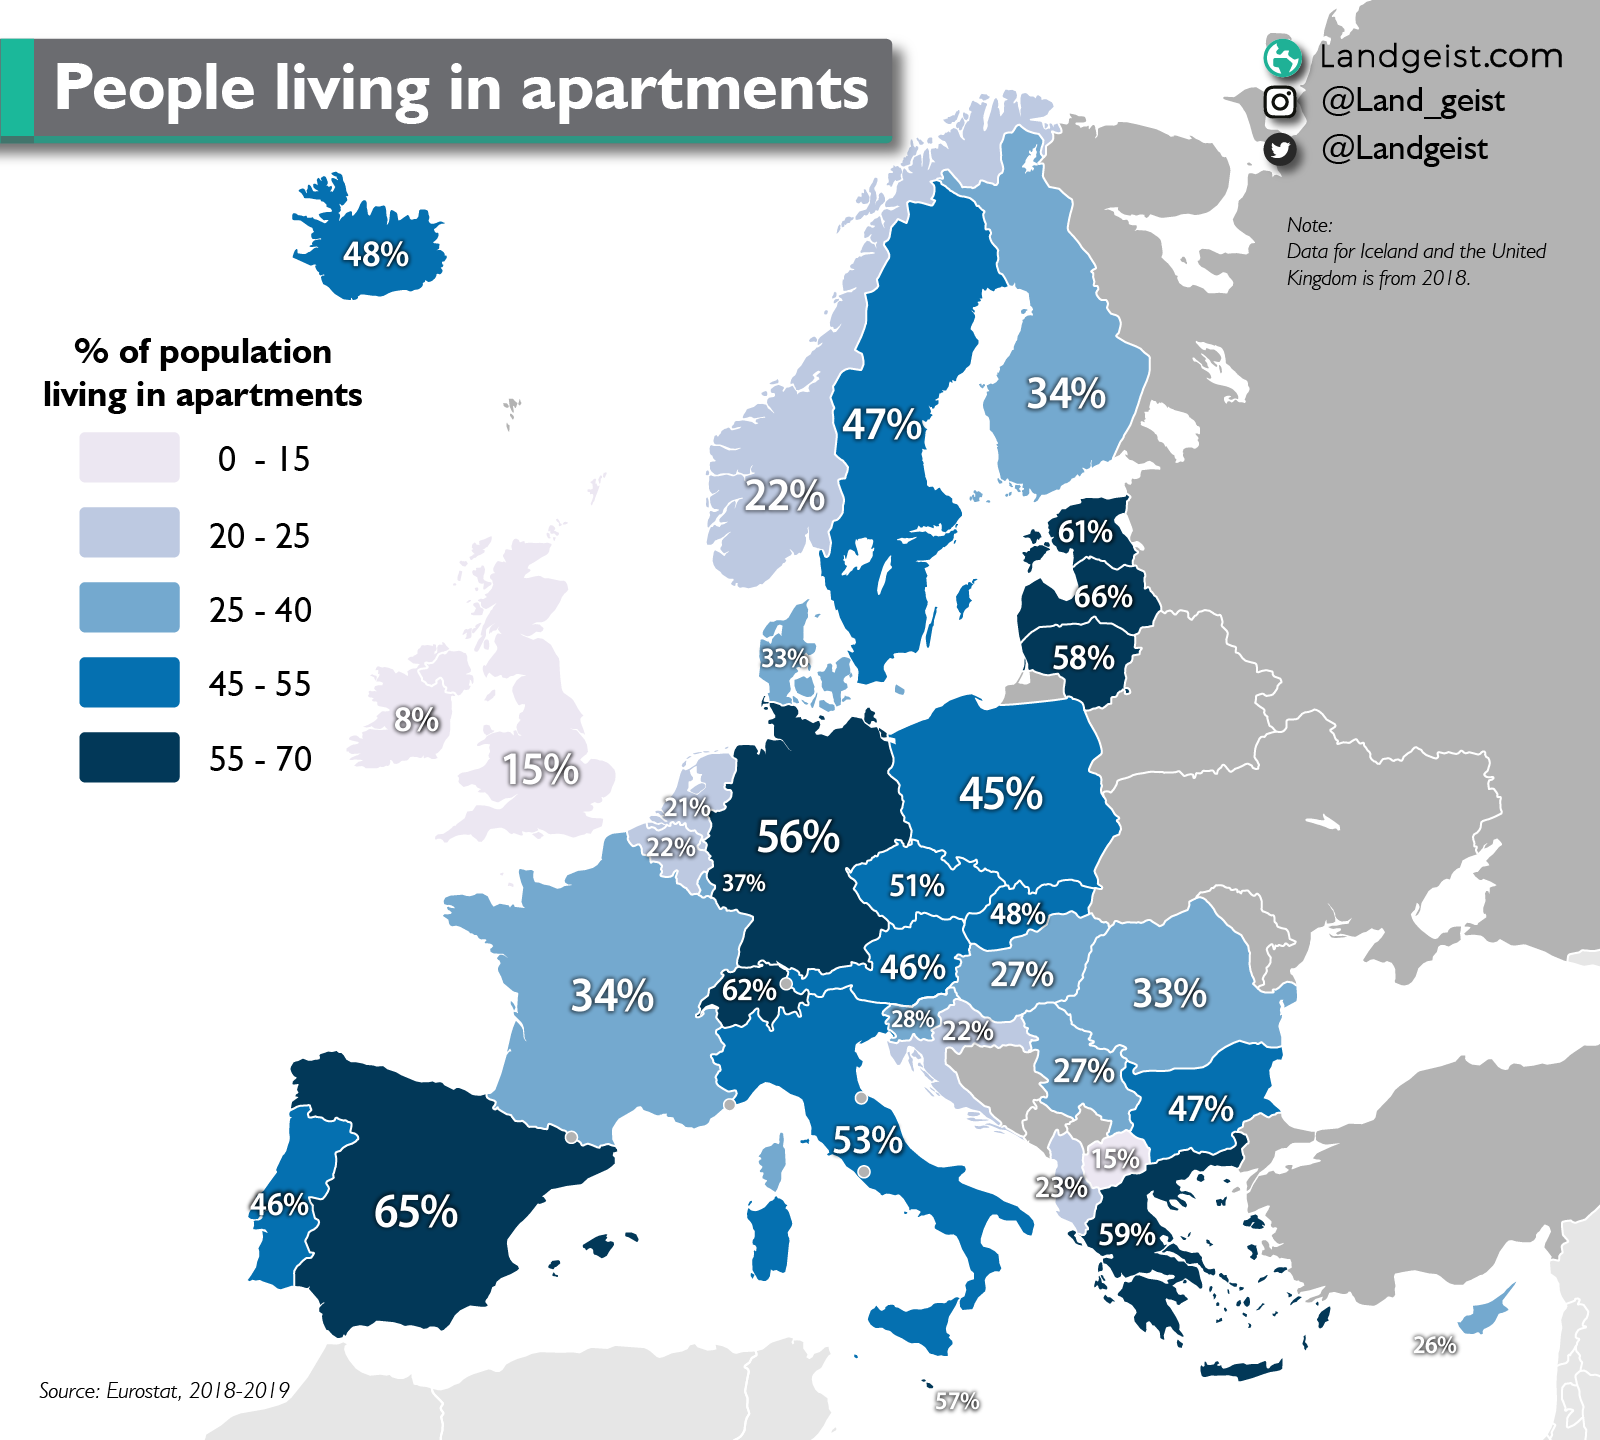 Map of Europe showing the percentage of its population living in apartments.